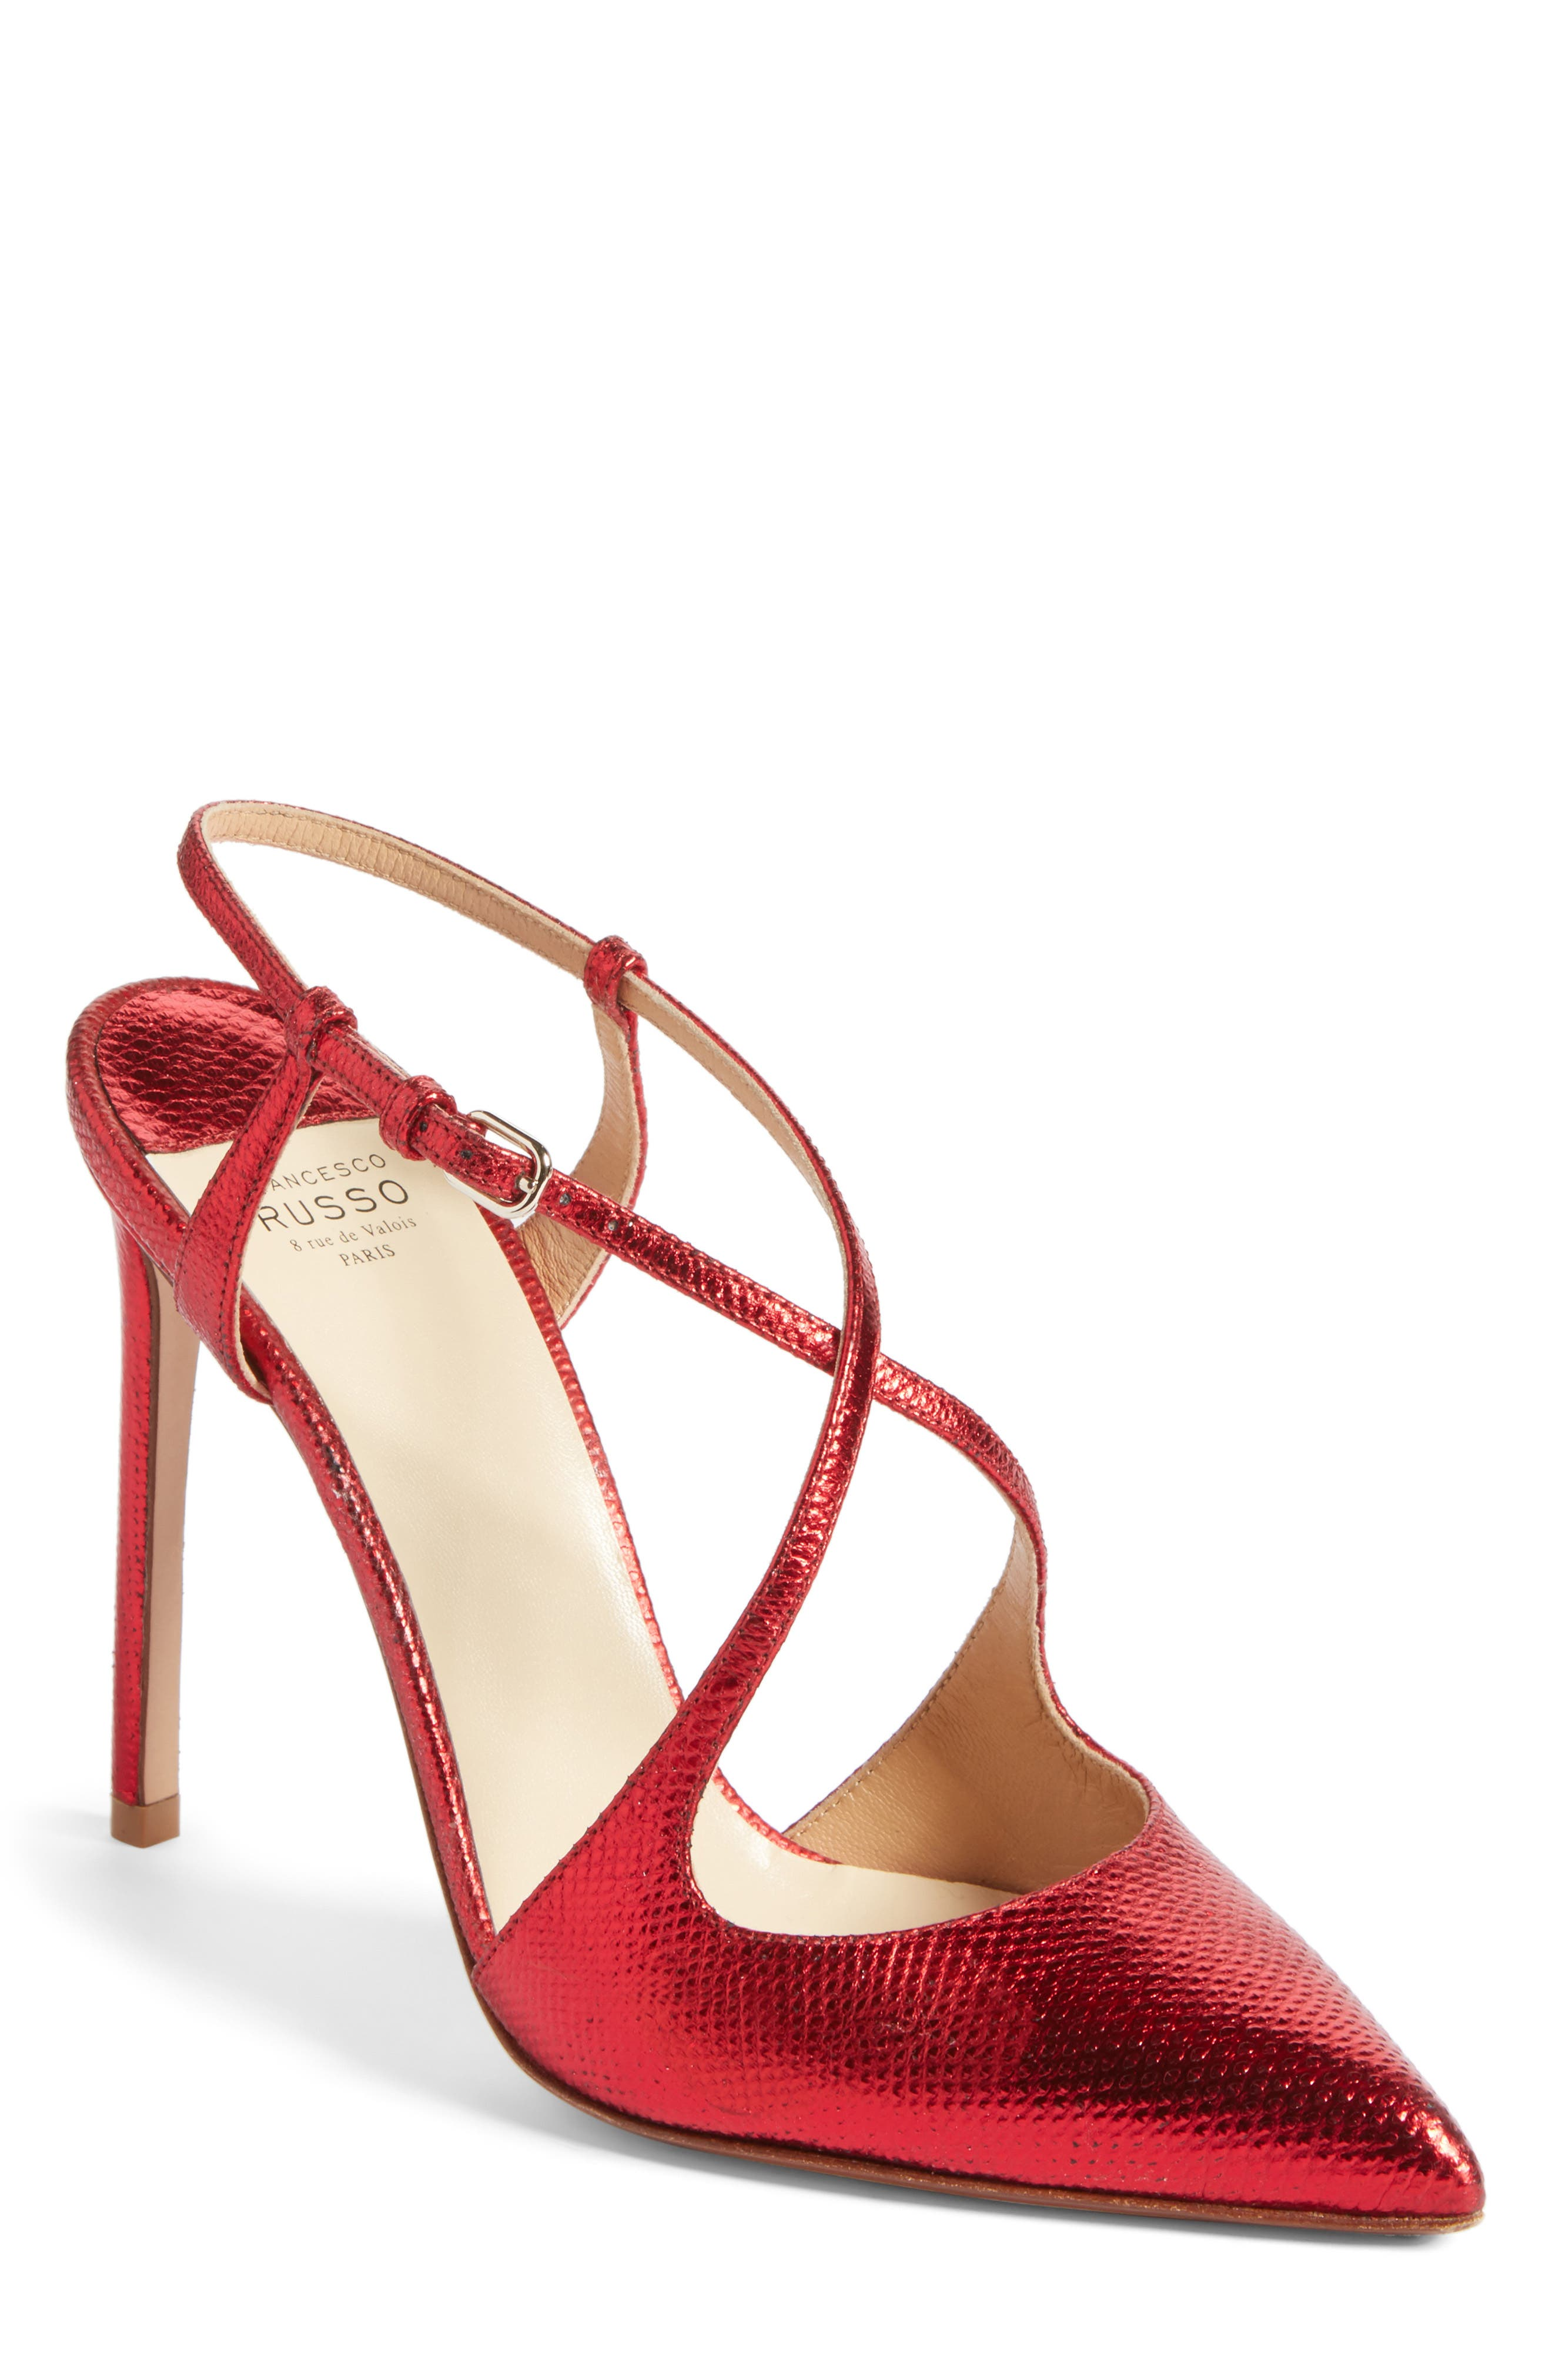 Alternate Image 1 Selected - Francesco Russo Criss Cross Genuine Snakeskin Pump (Women)